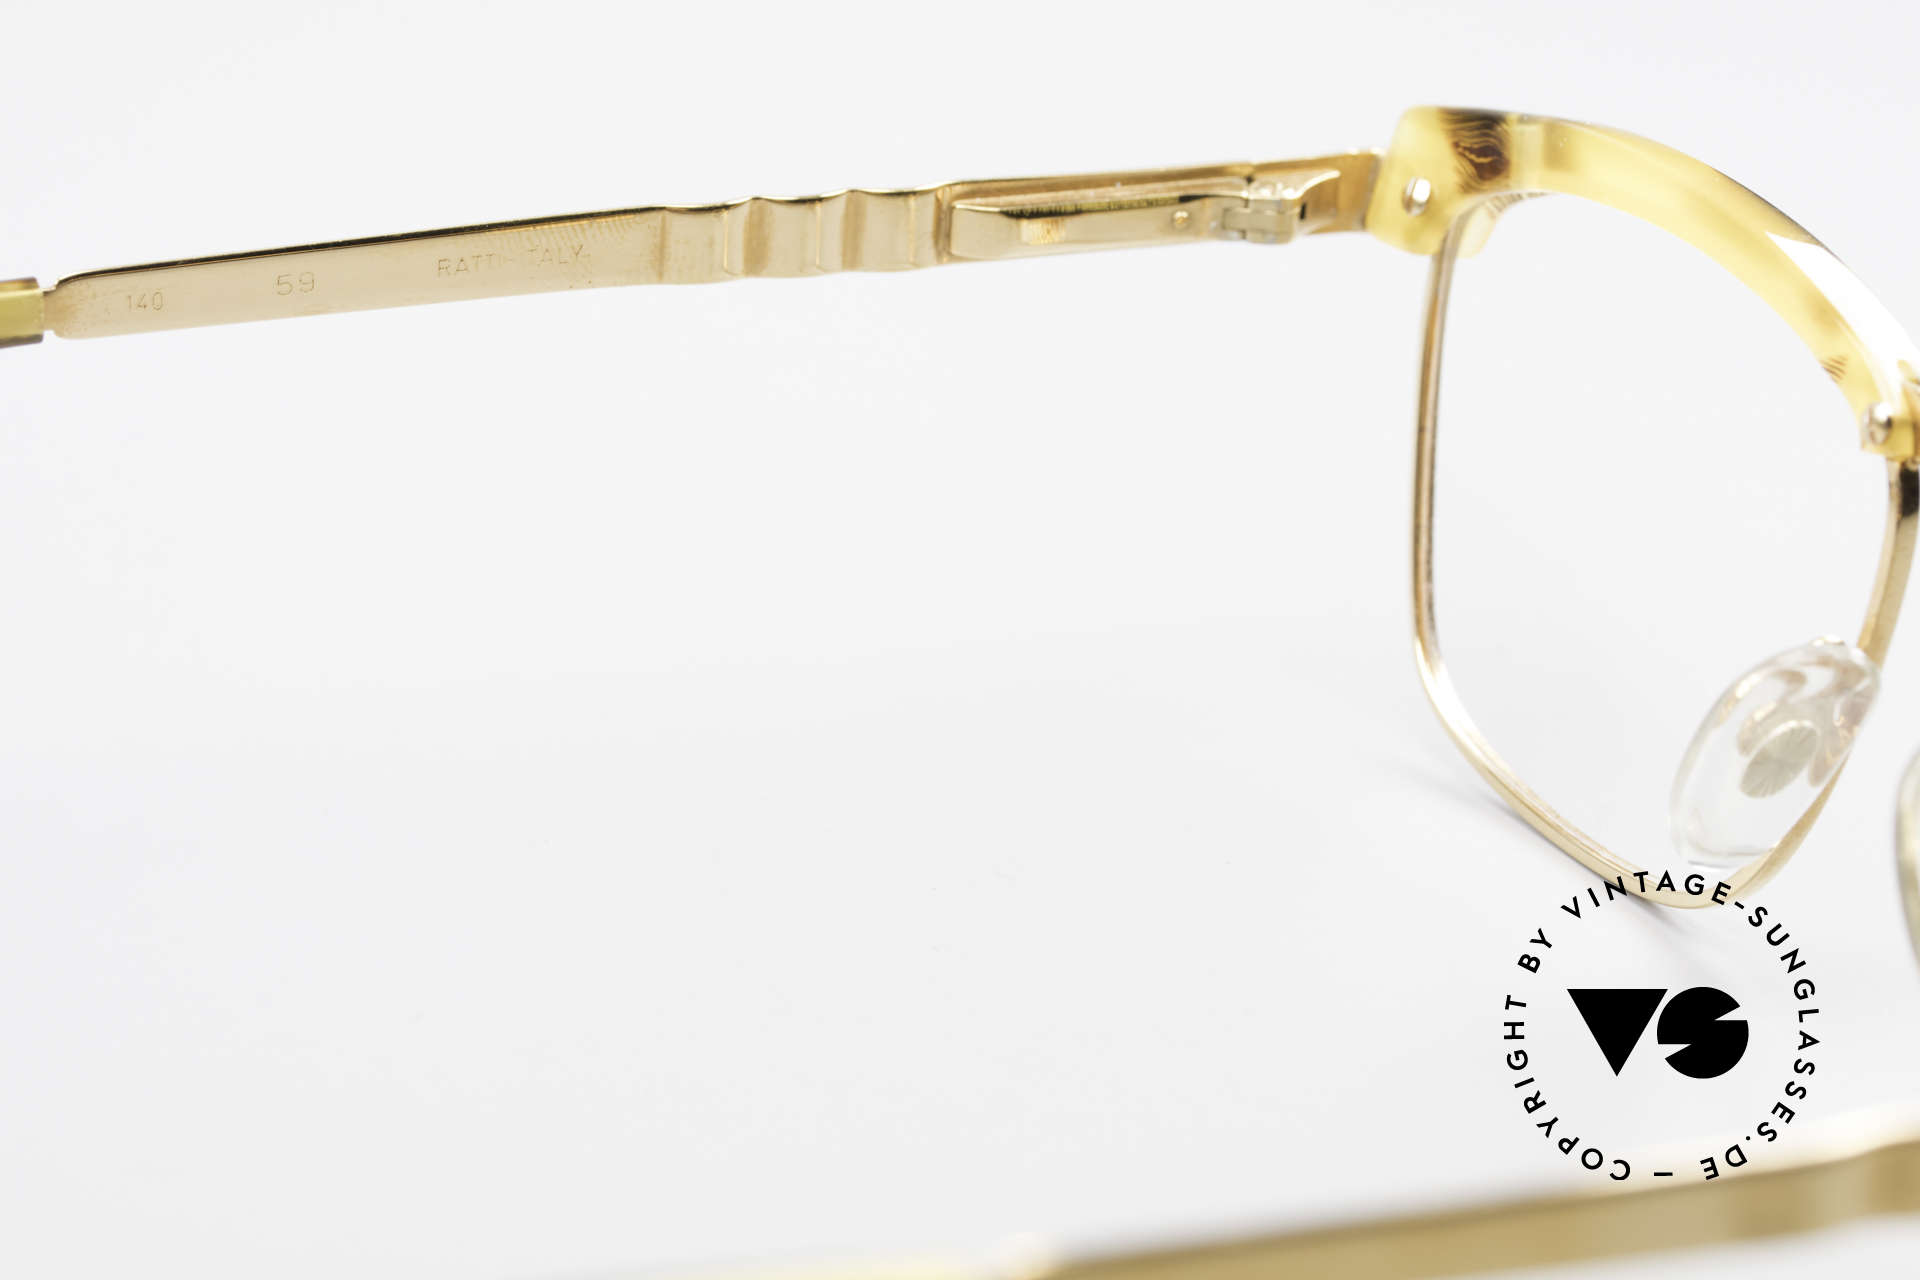 Persol Inge Ratti Gold Plated Vintage Glasses, NO retro frame, but a rare 30 years old original, Made for Men